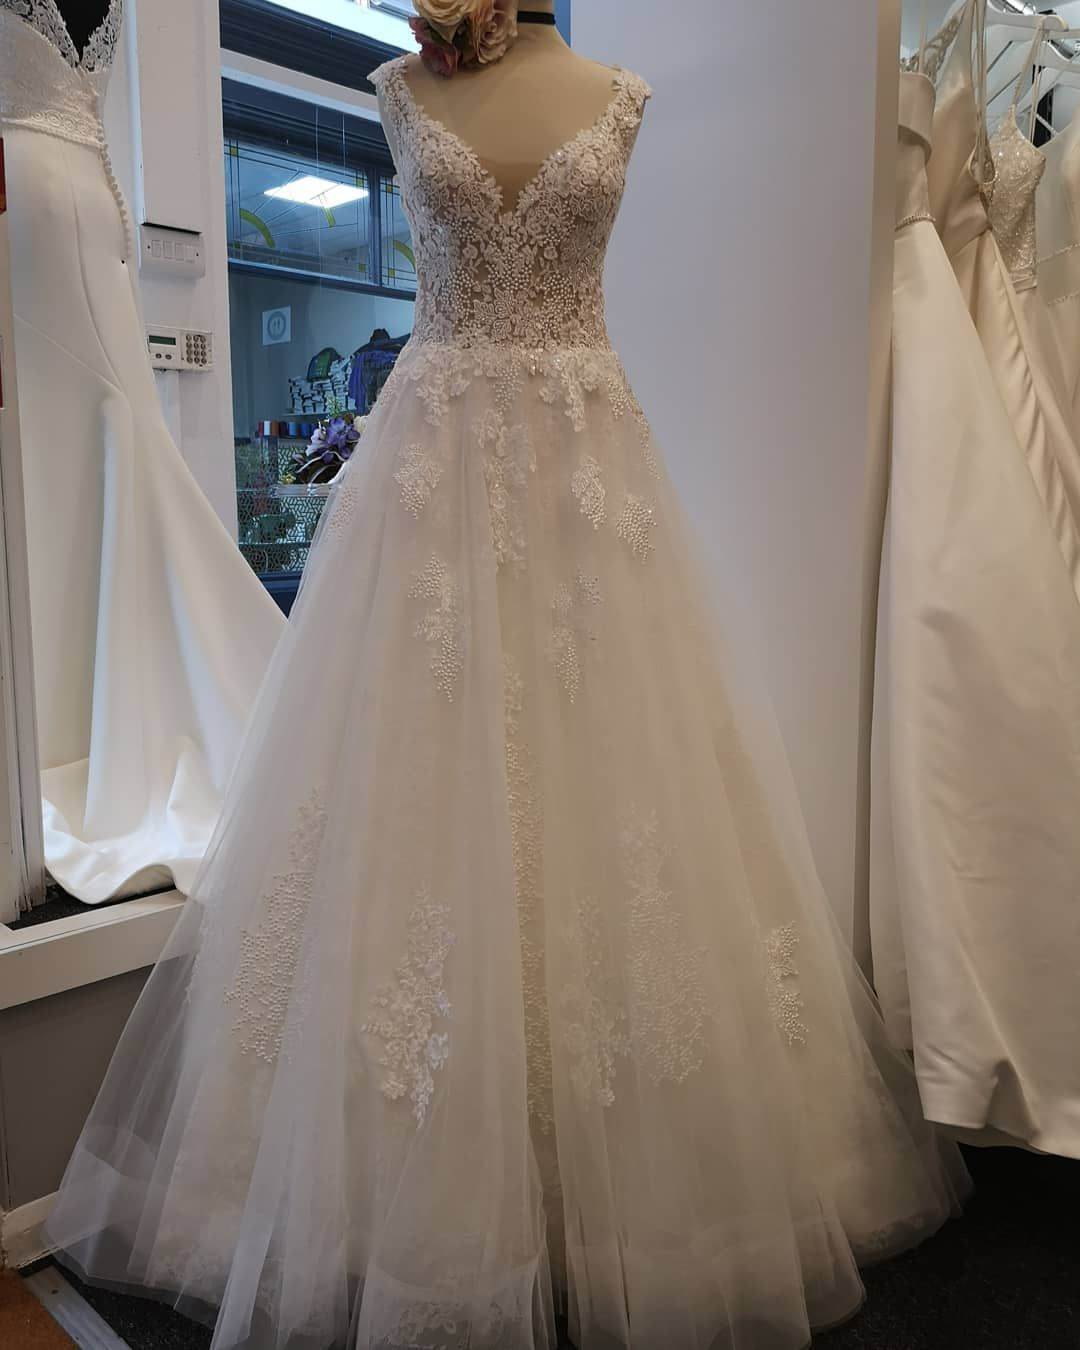 Perfection Bridal Cardiff On Instagram We Are All Over Our Latest Justin Alexander Arrival Who Would Like To Meet H Bridal Dresses Wedding Outfit Bridal